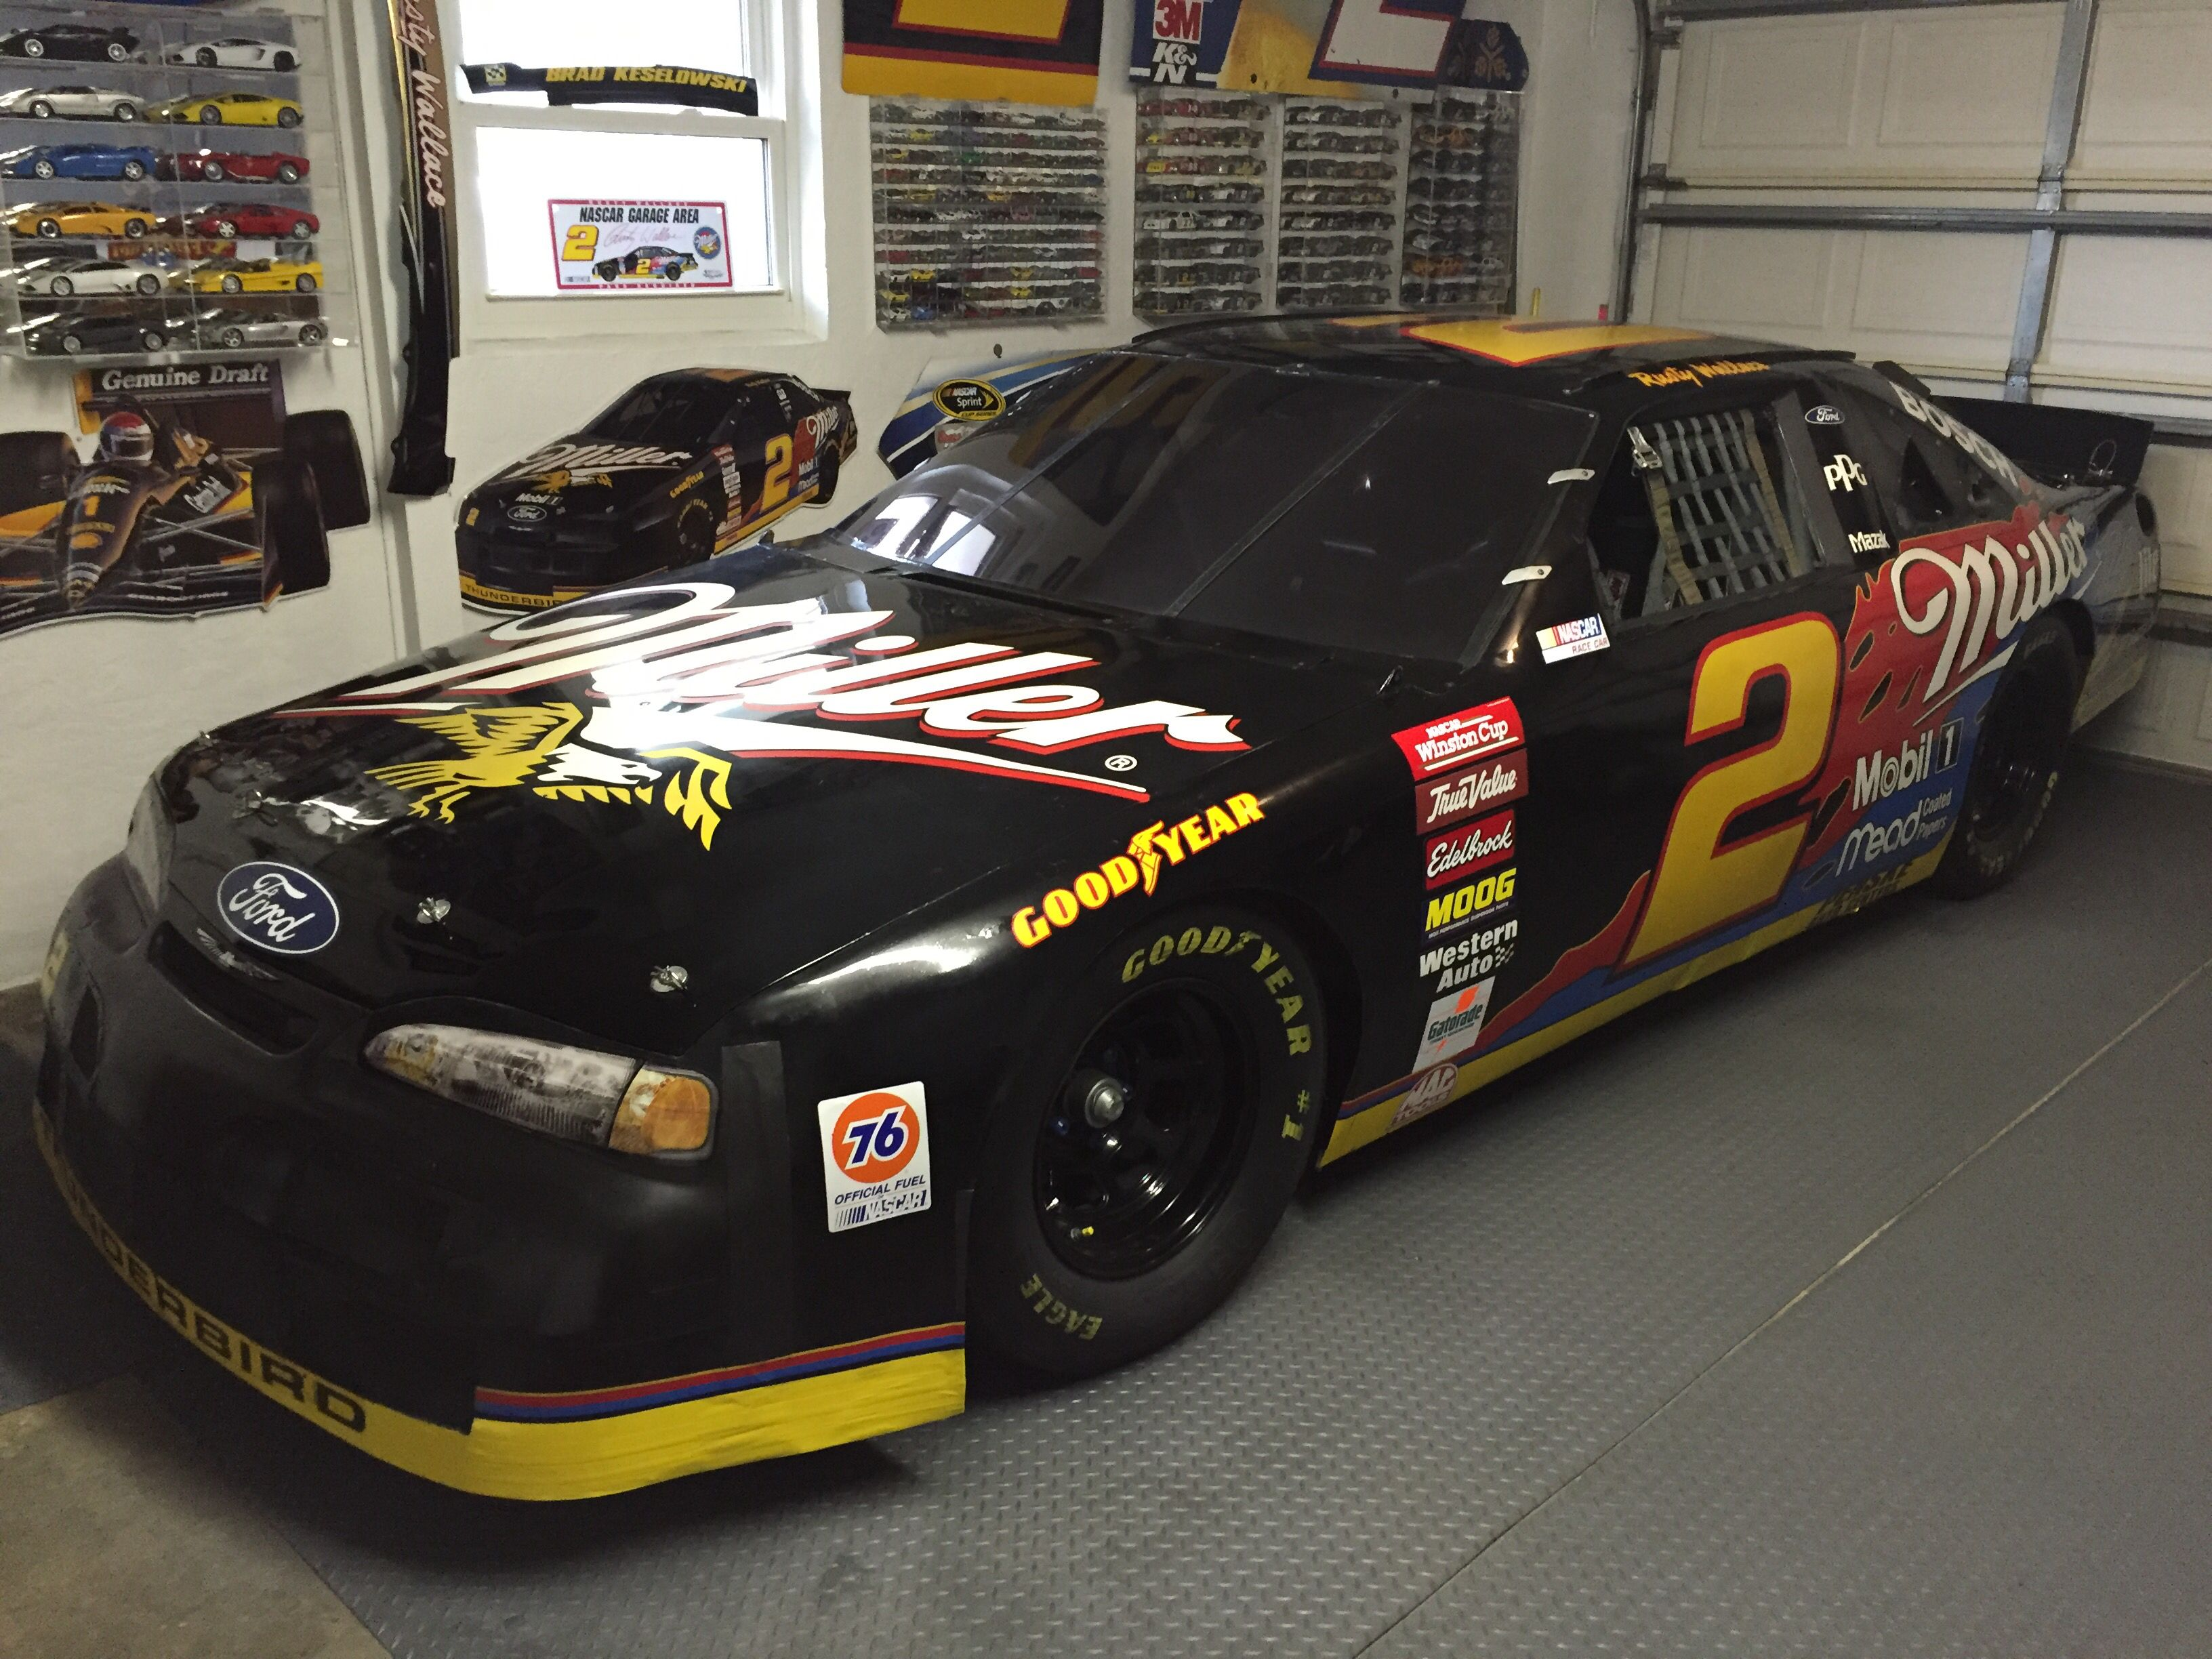 """1996 Miller 25th Anniversary """"Splash"""" car driven by Rusty Wallace"""